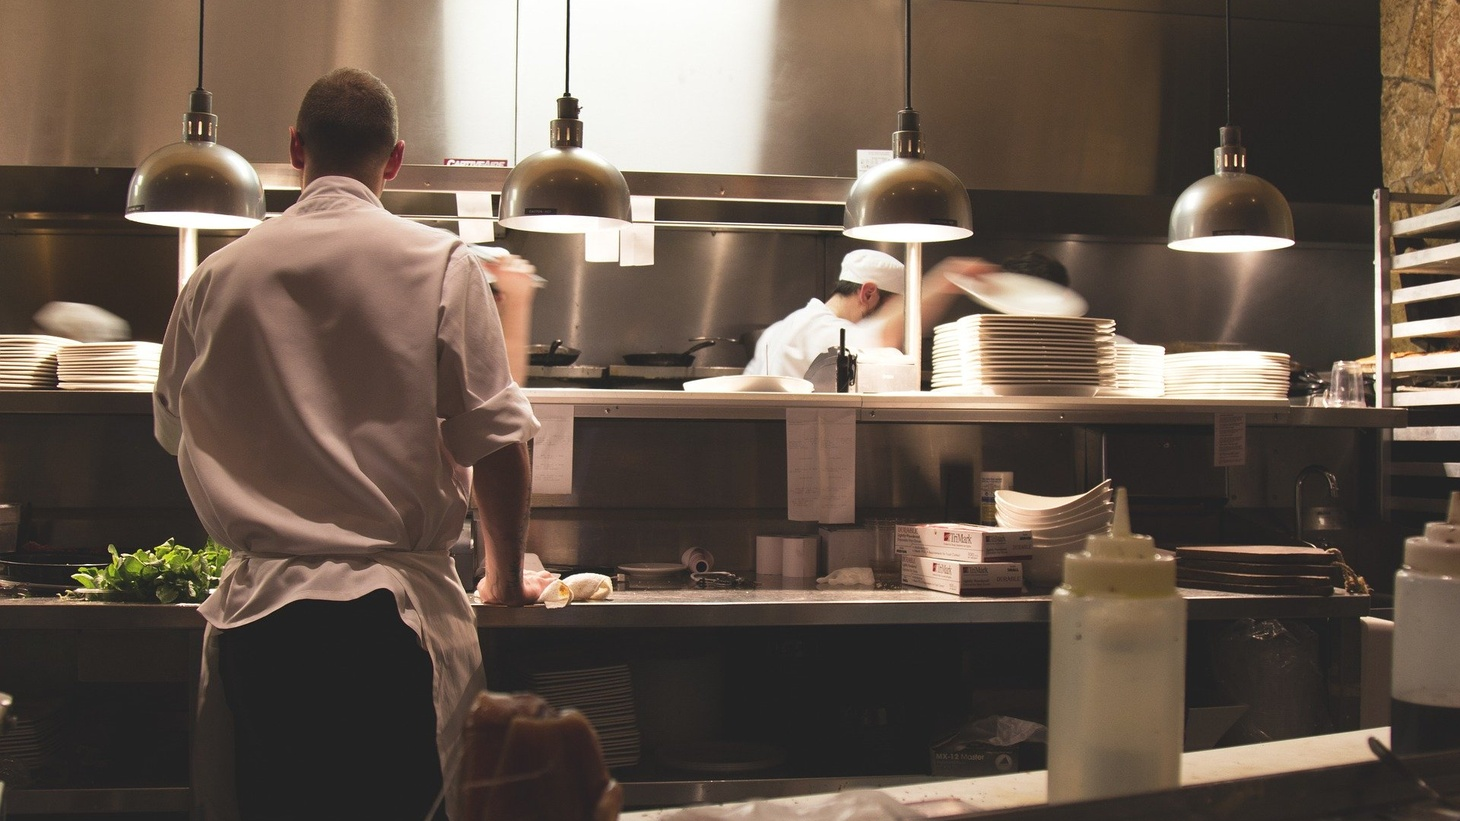 As dine-in restaurants reopen during the coronavirus pandemic, how will staff and customers maintain social distancing?